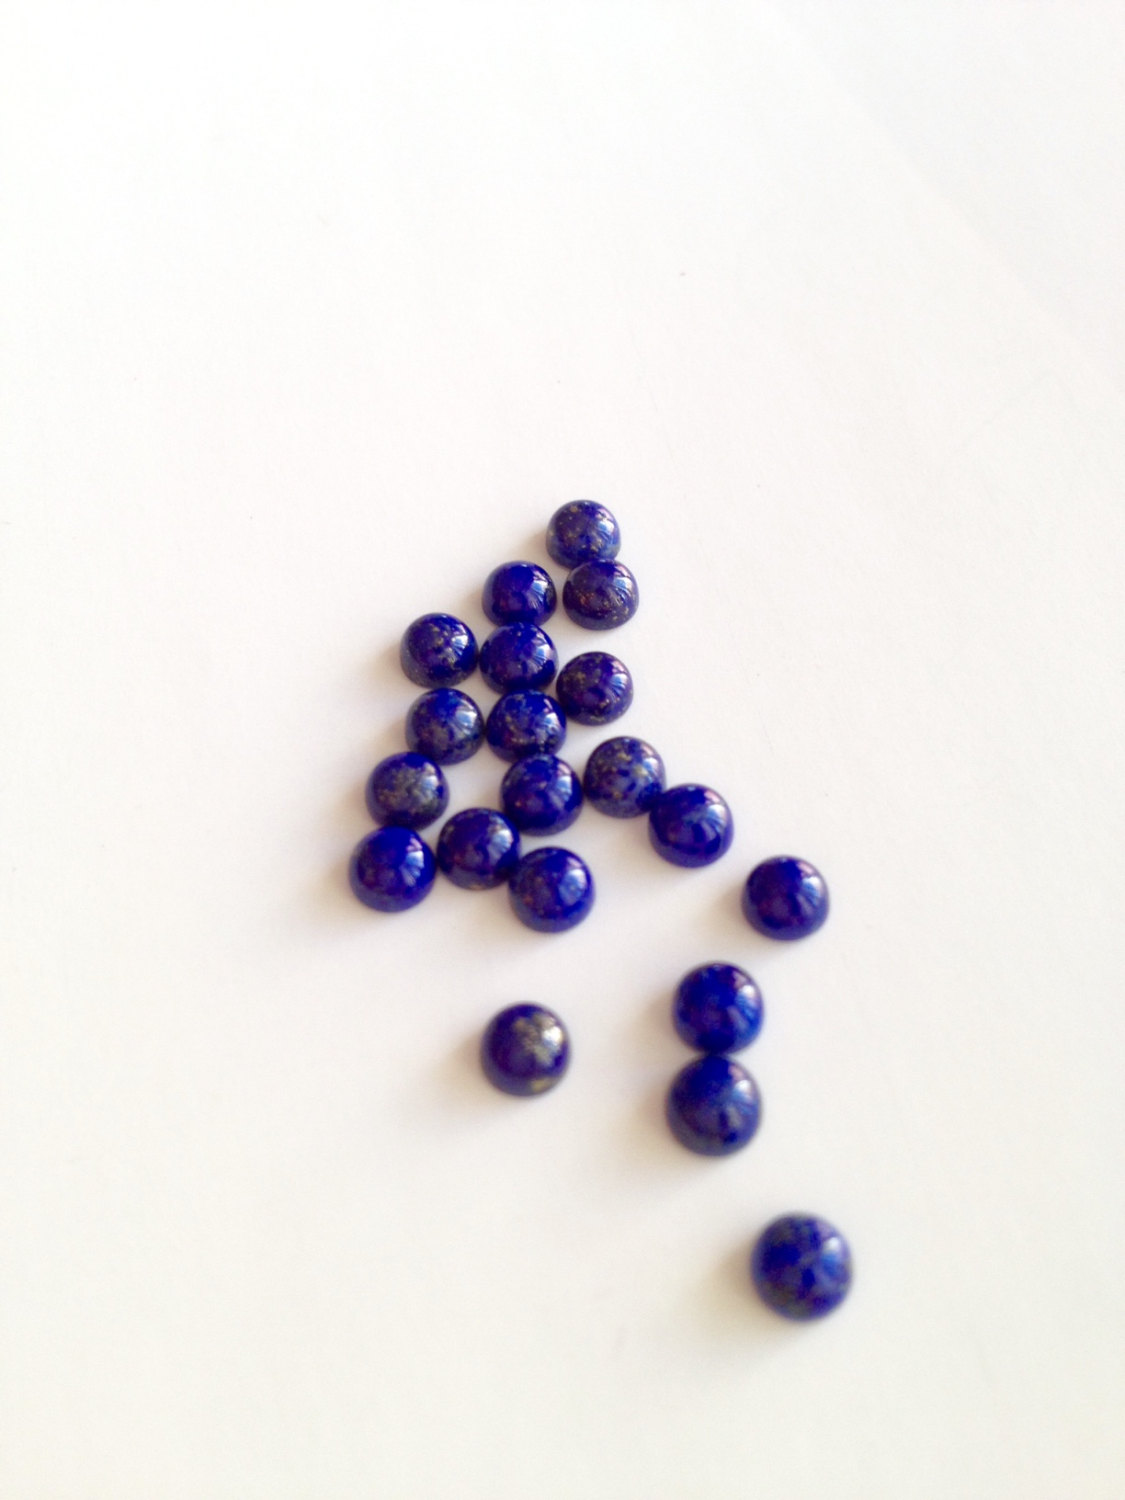 4mm Natural Lapis Lazuli - Cabochon Cut Round 50 Pieces Top Quality Blue Color - Loose Gemstone Wholesale Lot For Sale